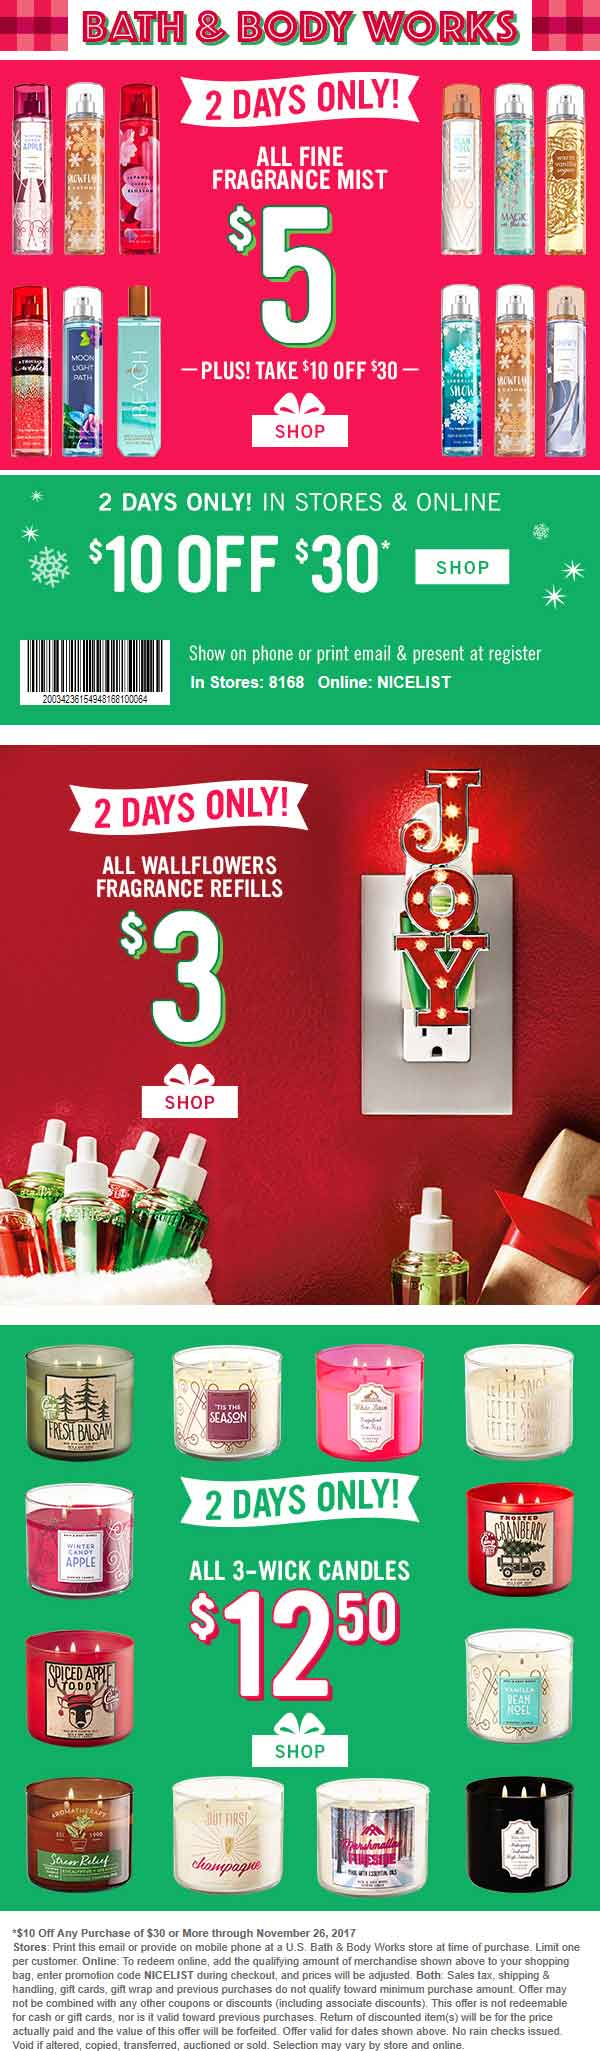 Bath & Body Works Coupon August 2019 $10 off $30 at Bath & Body Works, or online via promo code NICELIST